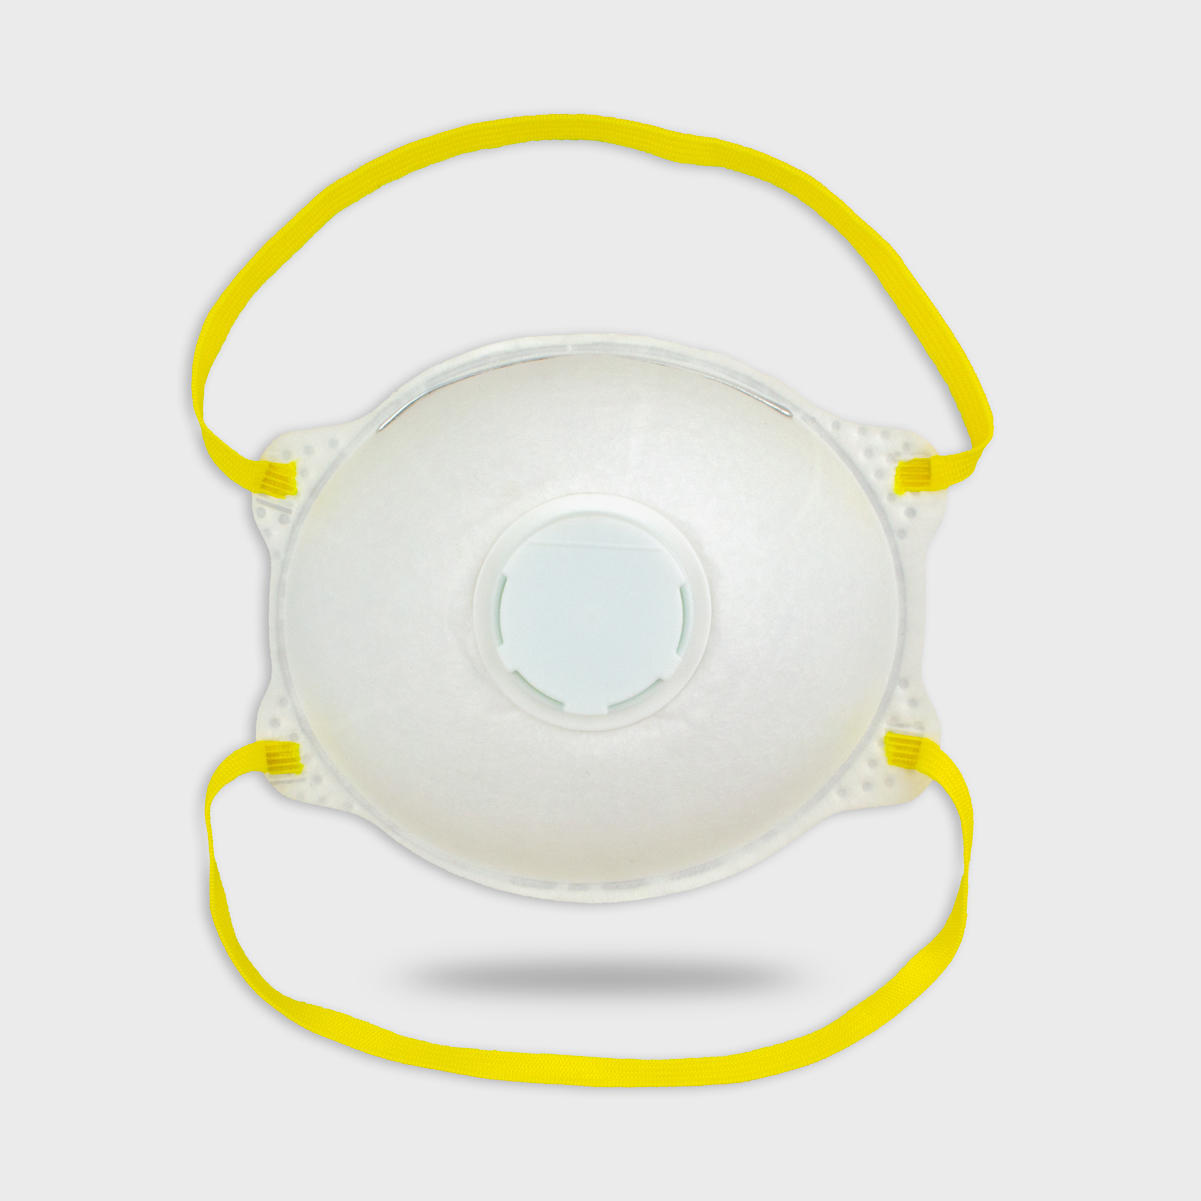 Cup-Type Filter Mask with Valve (Head-Belt Style)